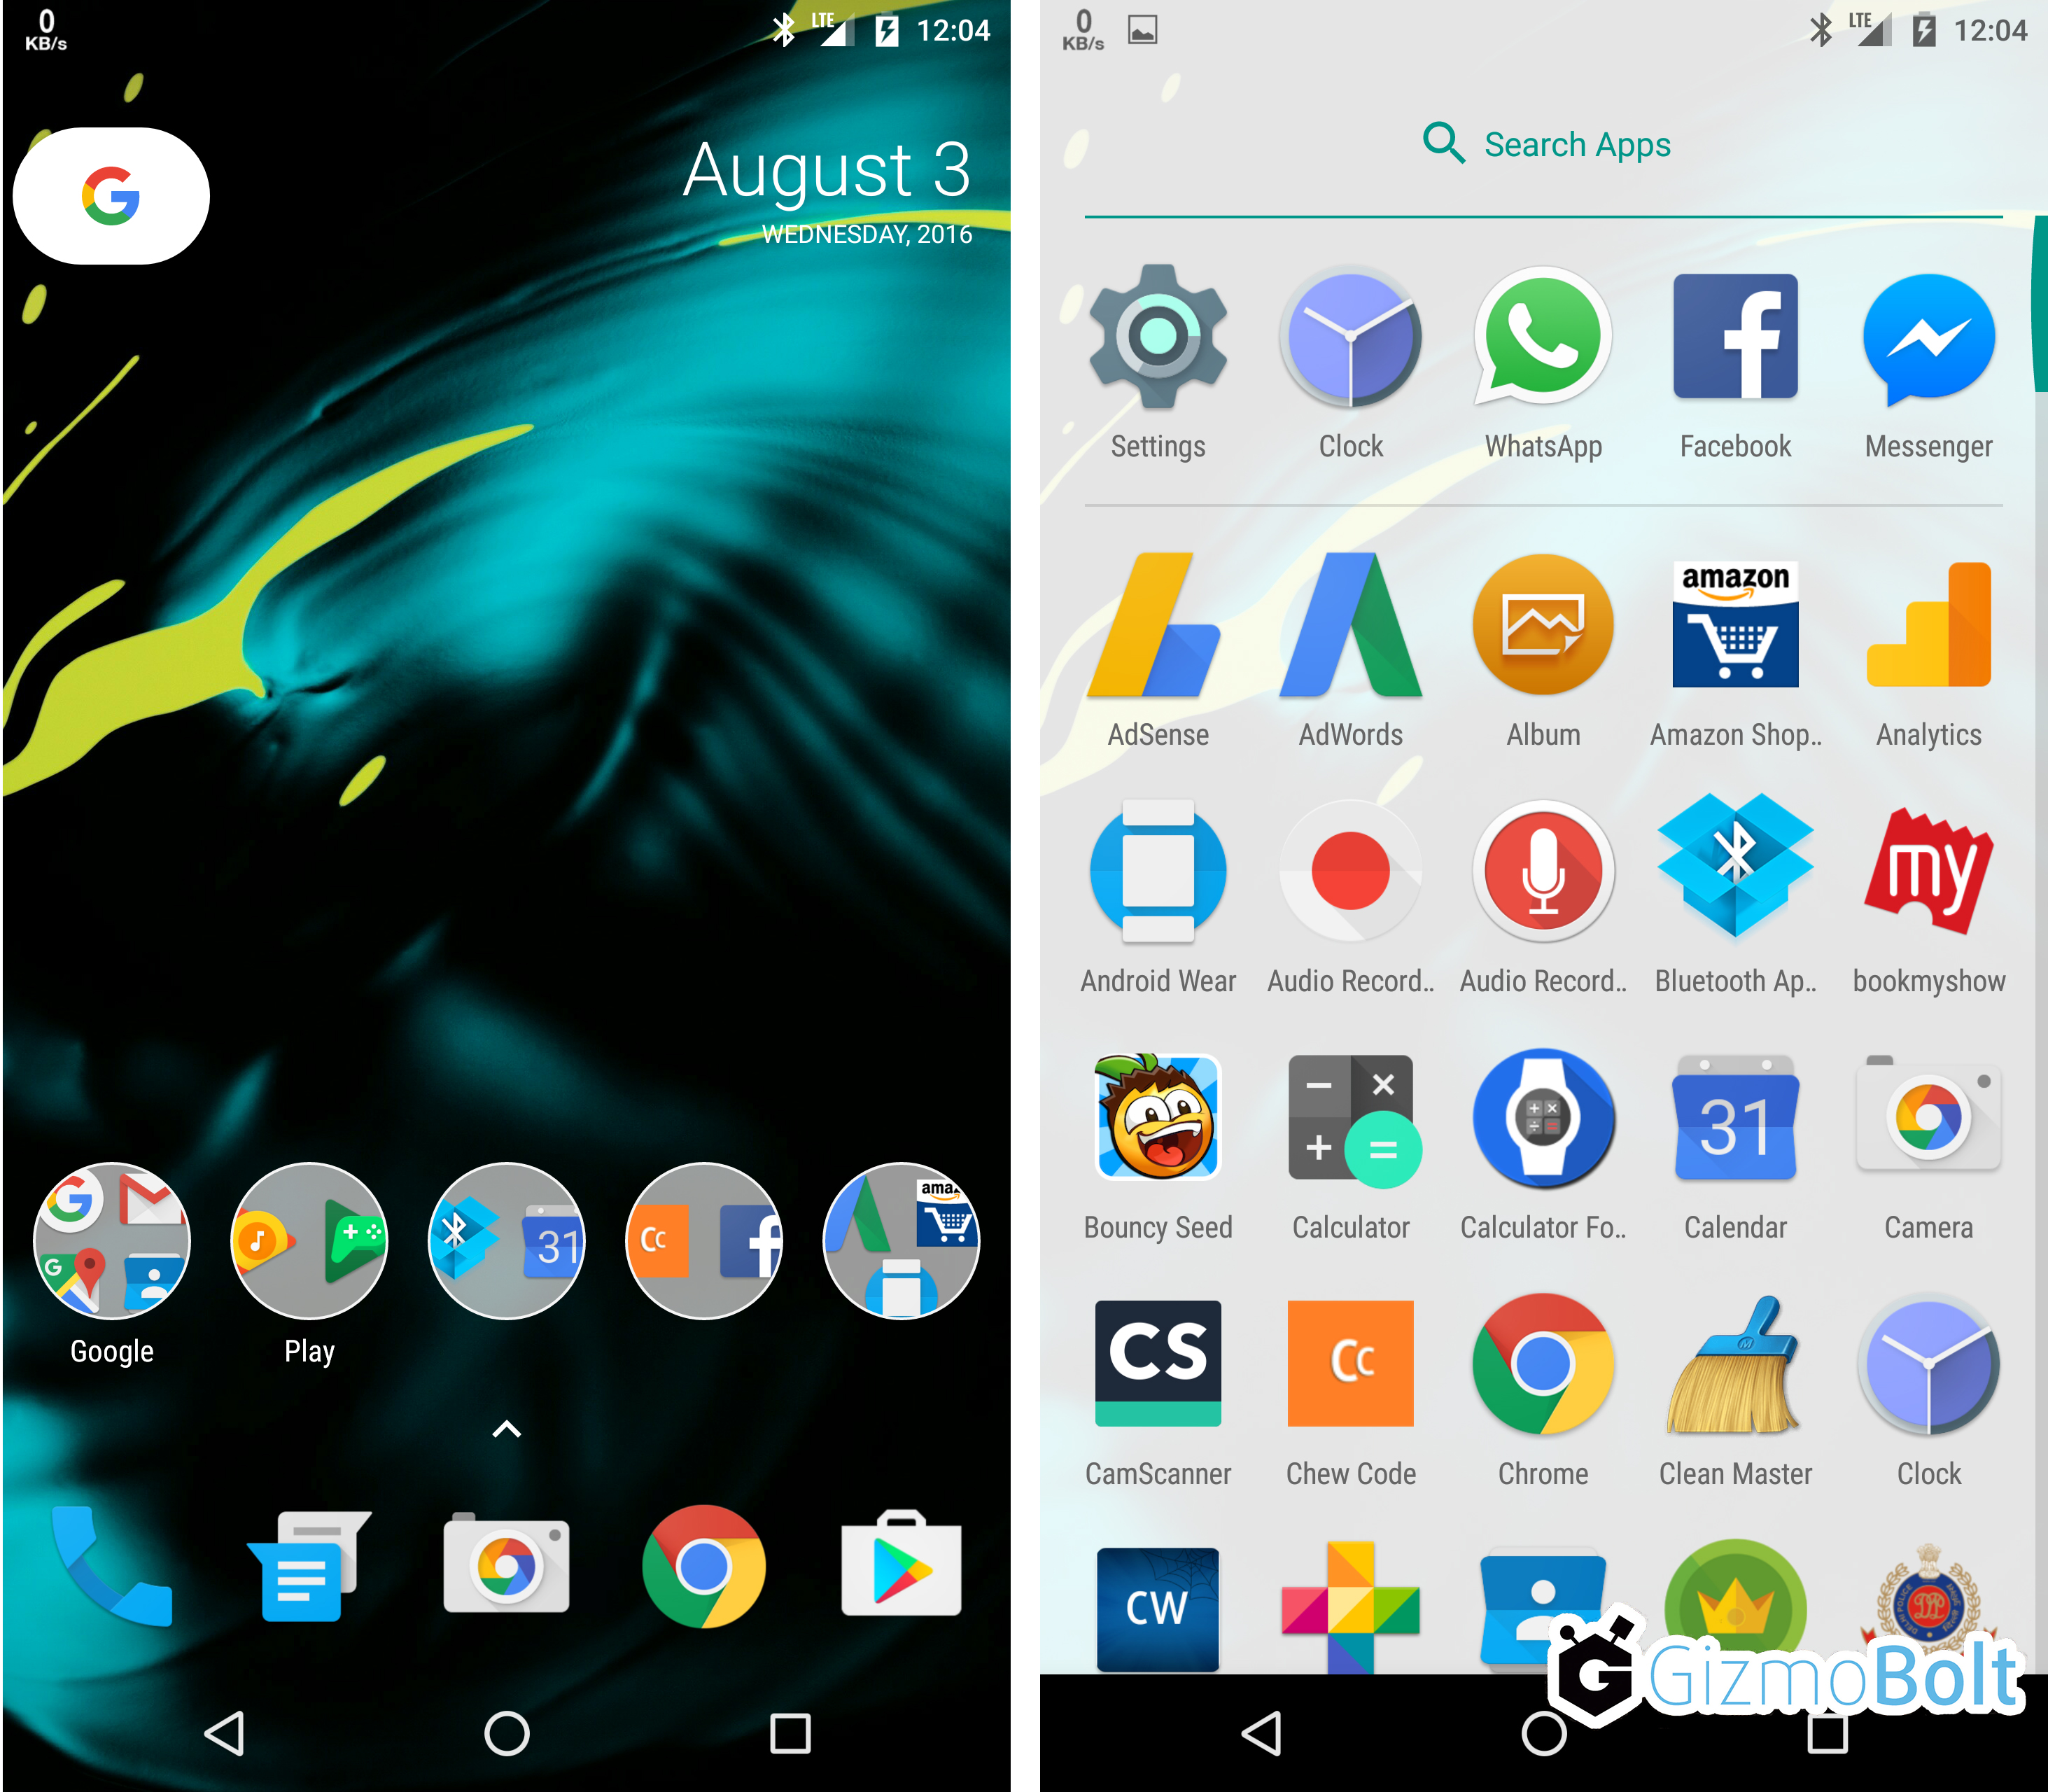 Android 7 Nexus Launcher